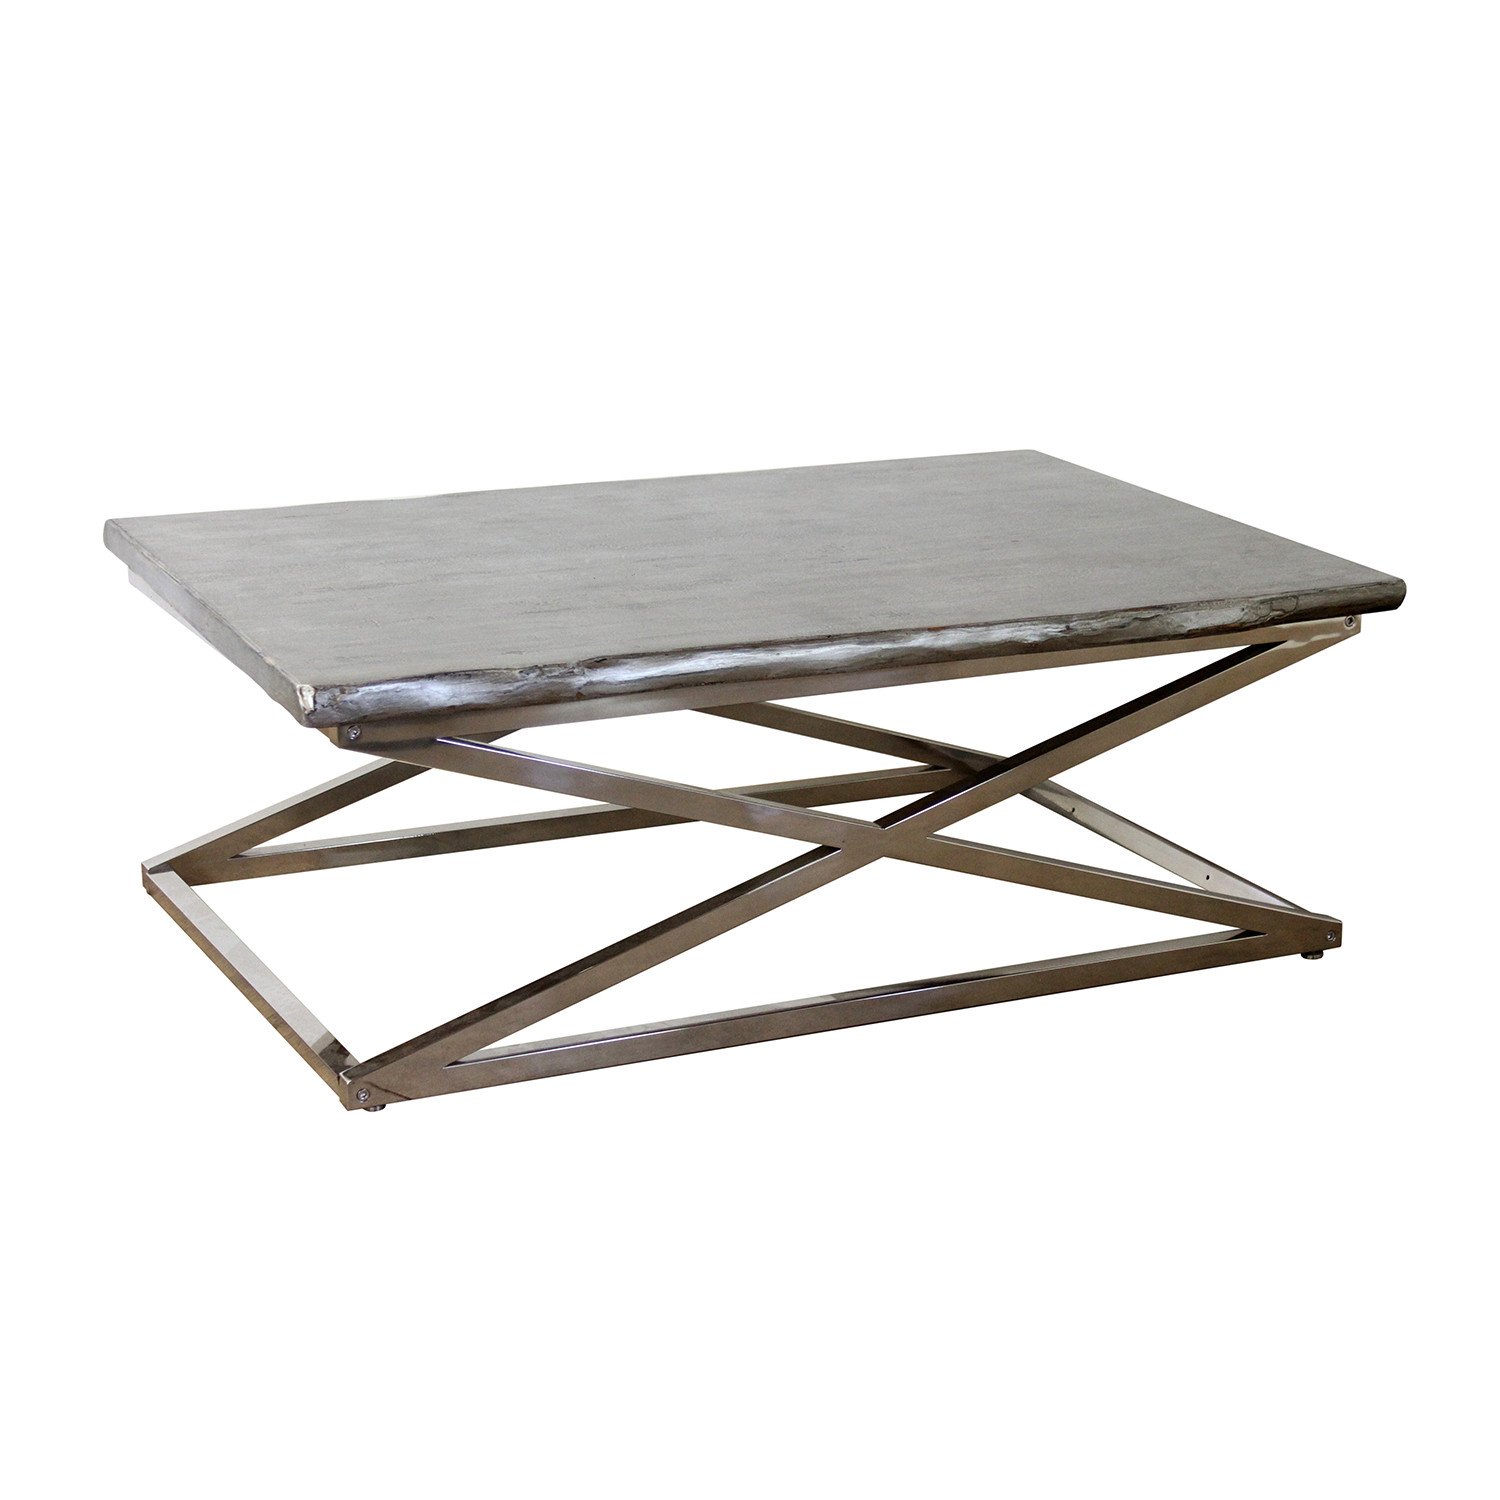 Voltin Live Edge Coffee Table with Chrome legs Madera Home